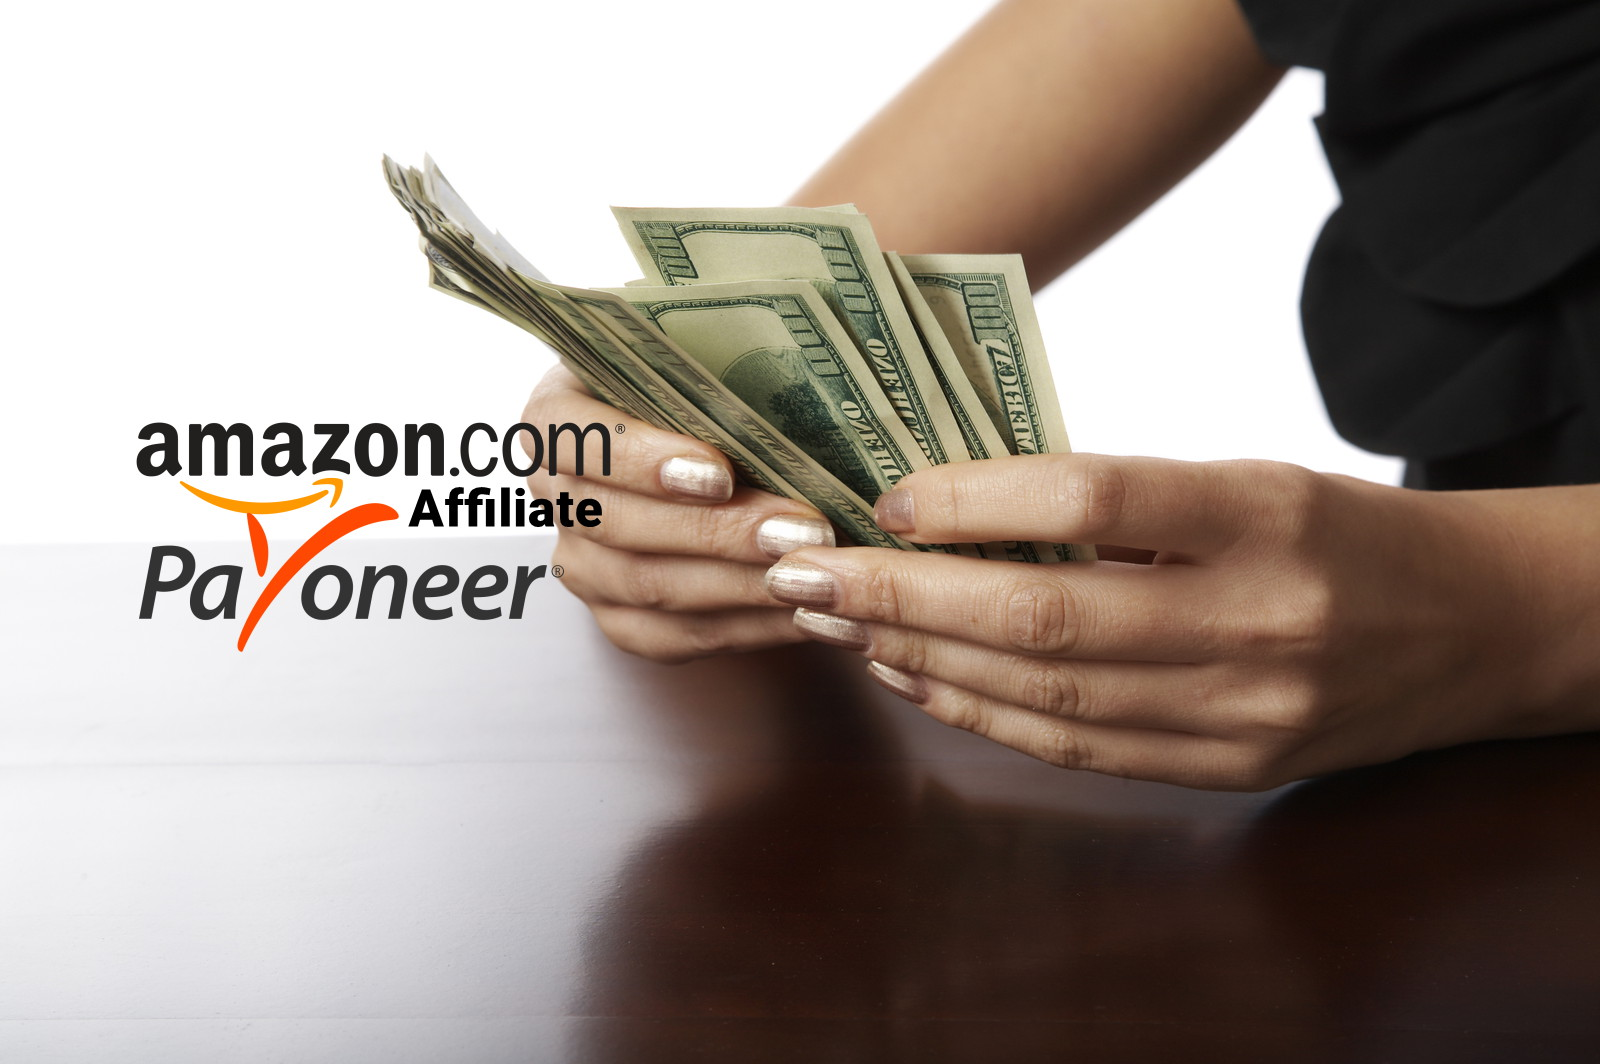 Amazon US affiliate payoneer